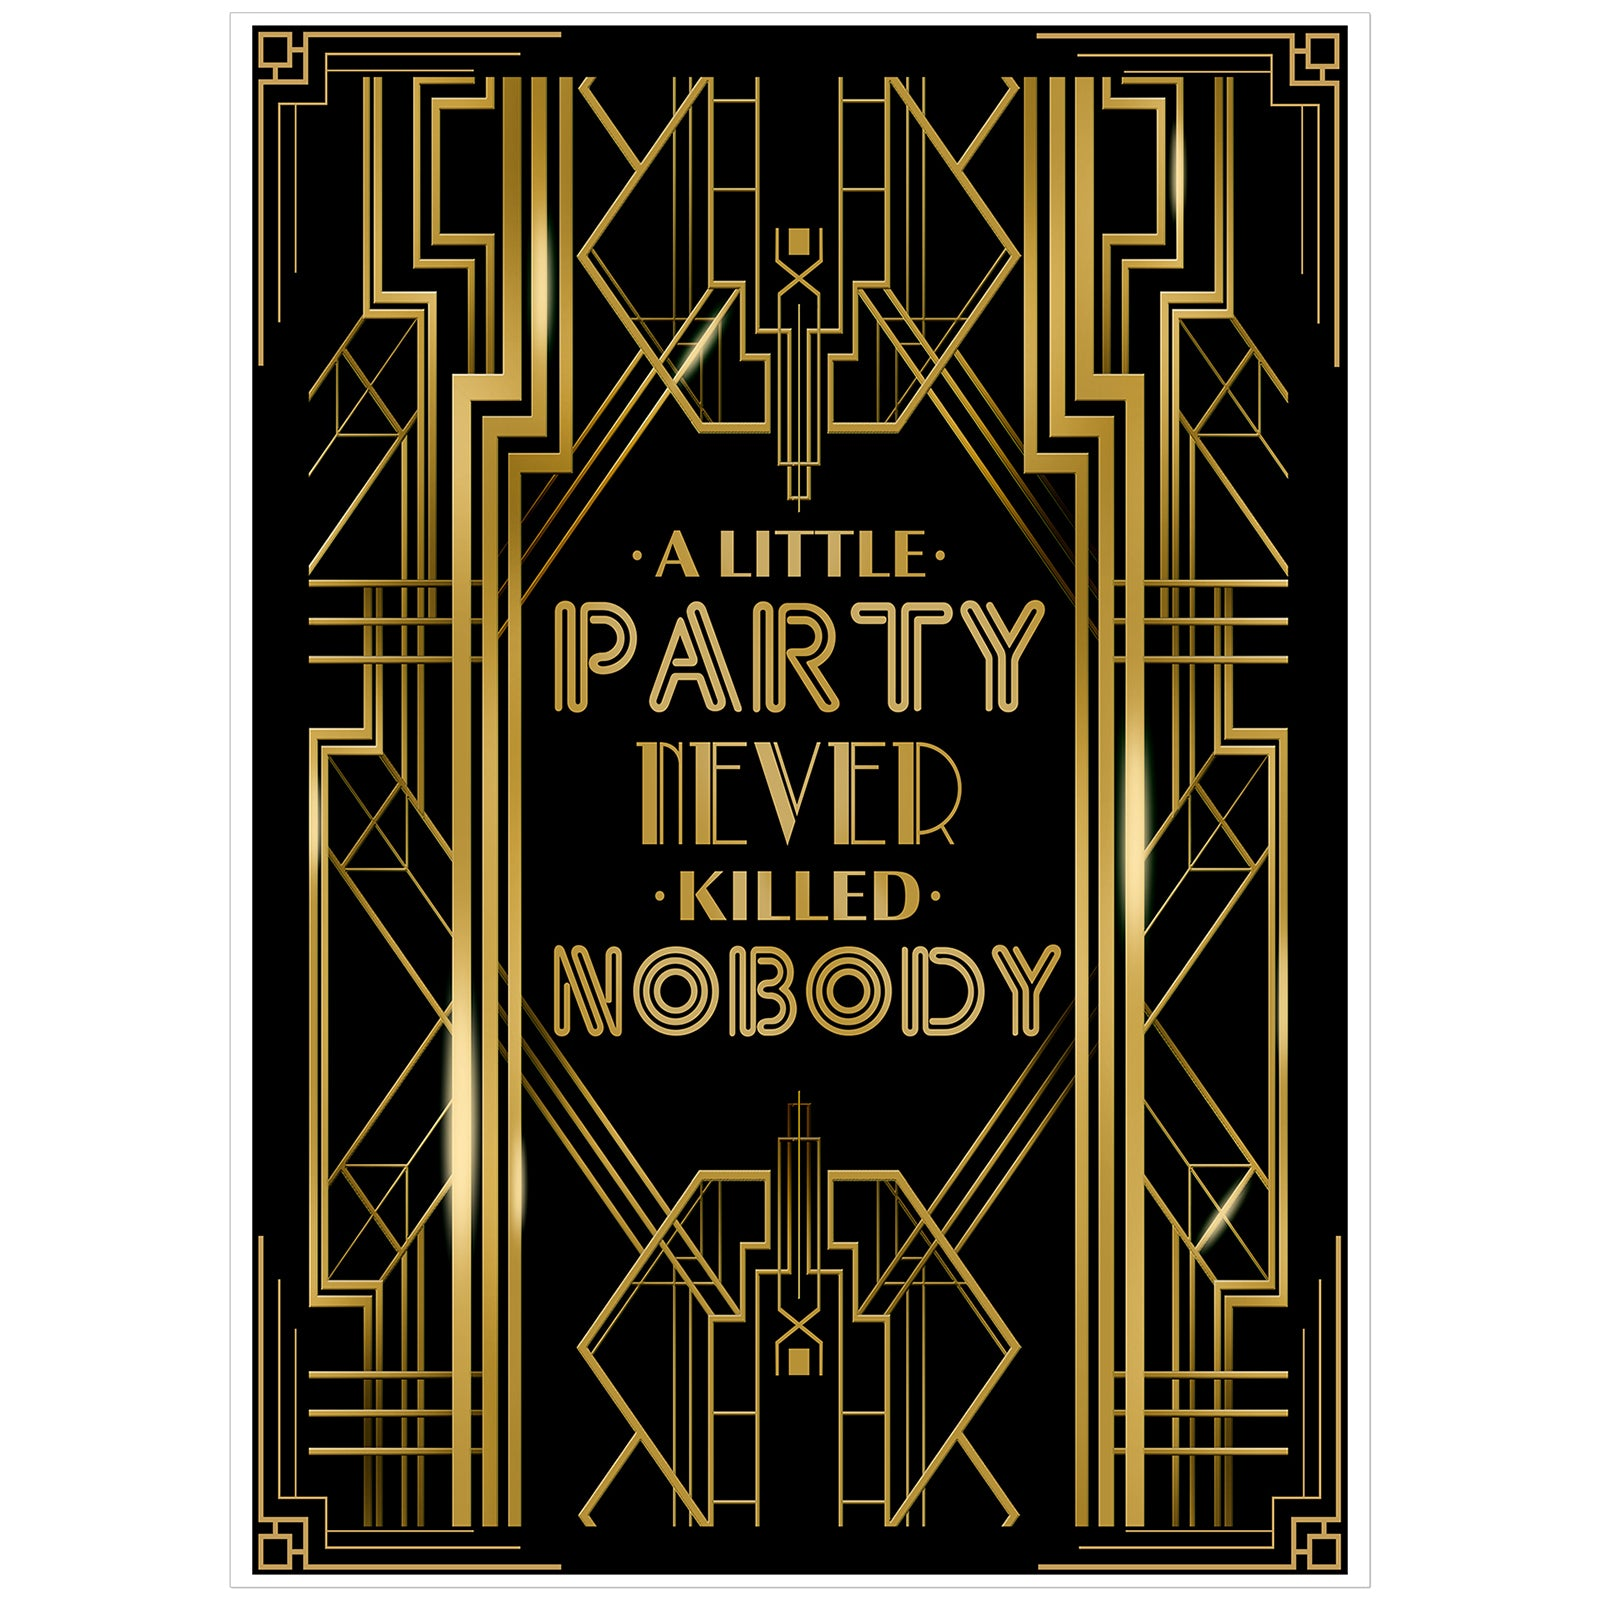 Roaring 20s Art Deco Poster|A Little Party Never Killed Nobody|16x12inch A3